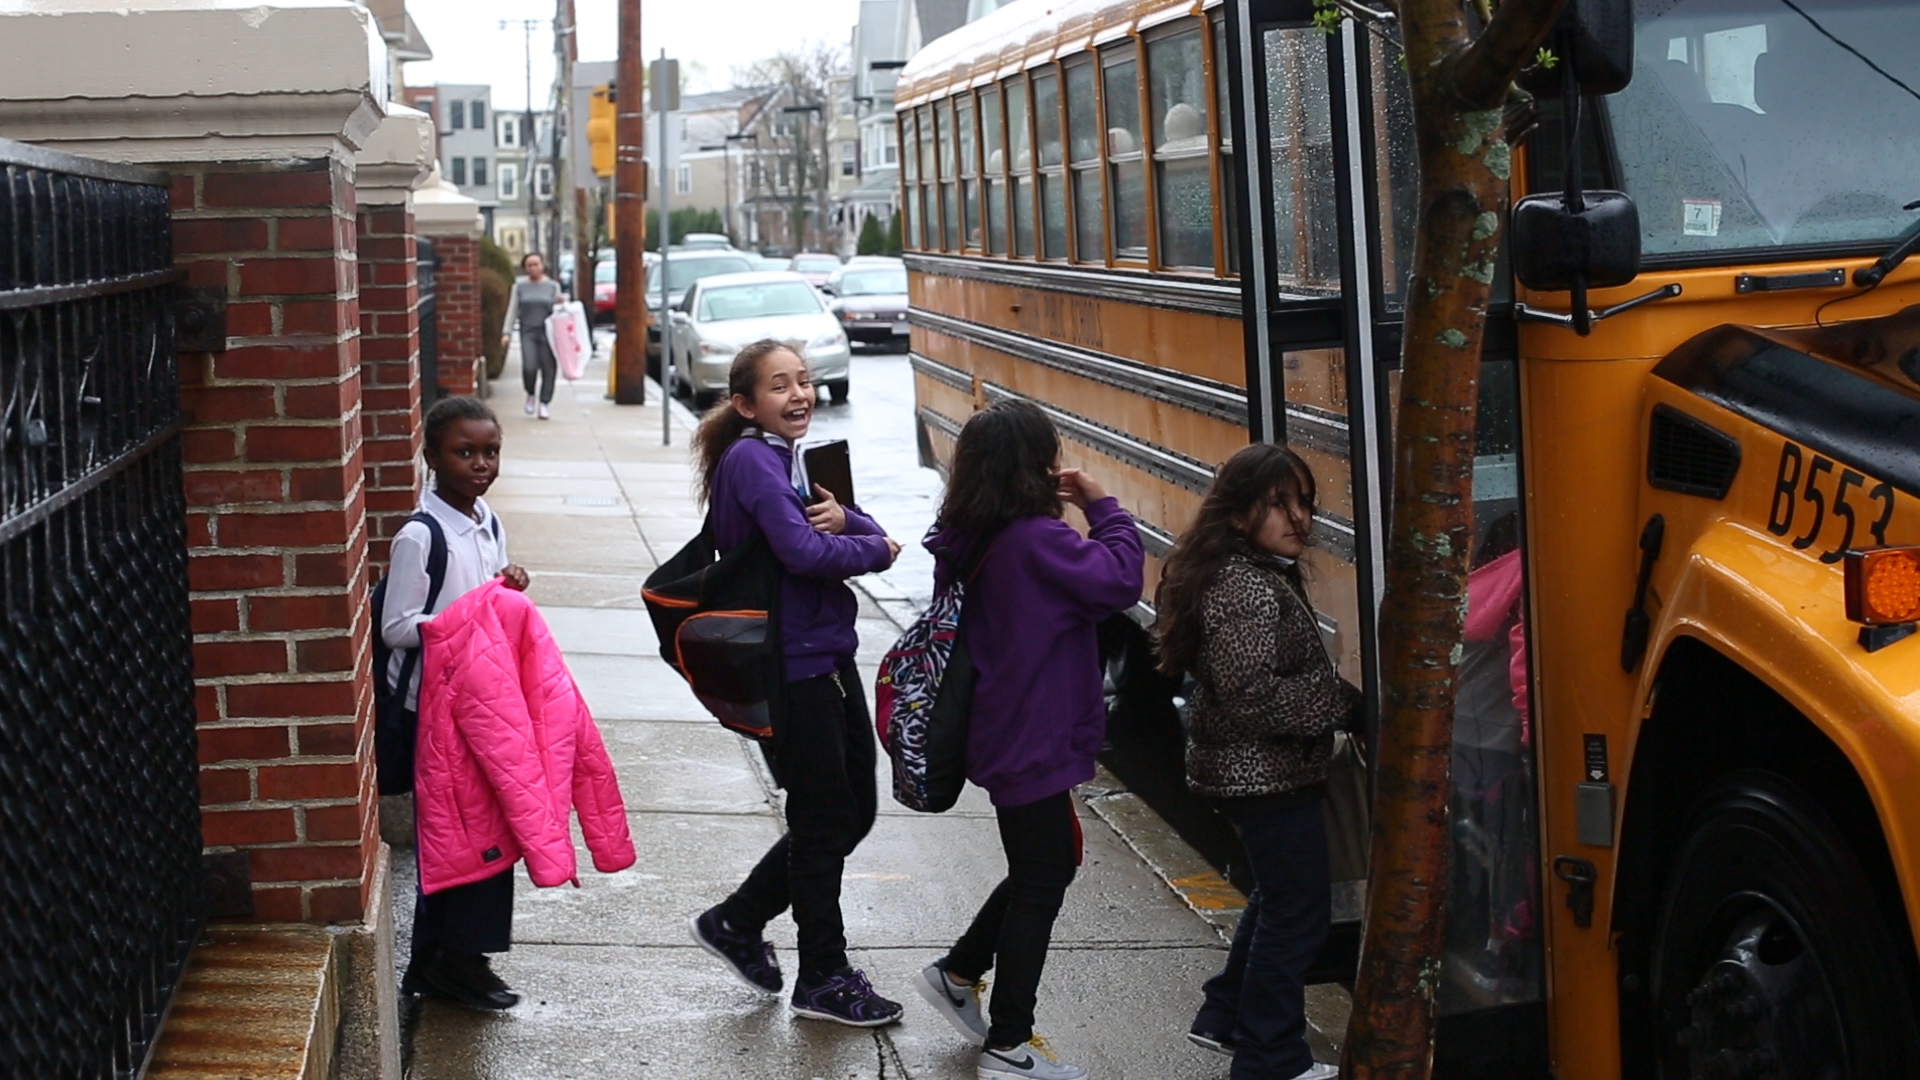 Students boarding school bus from city sidewalk